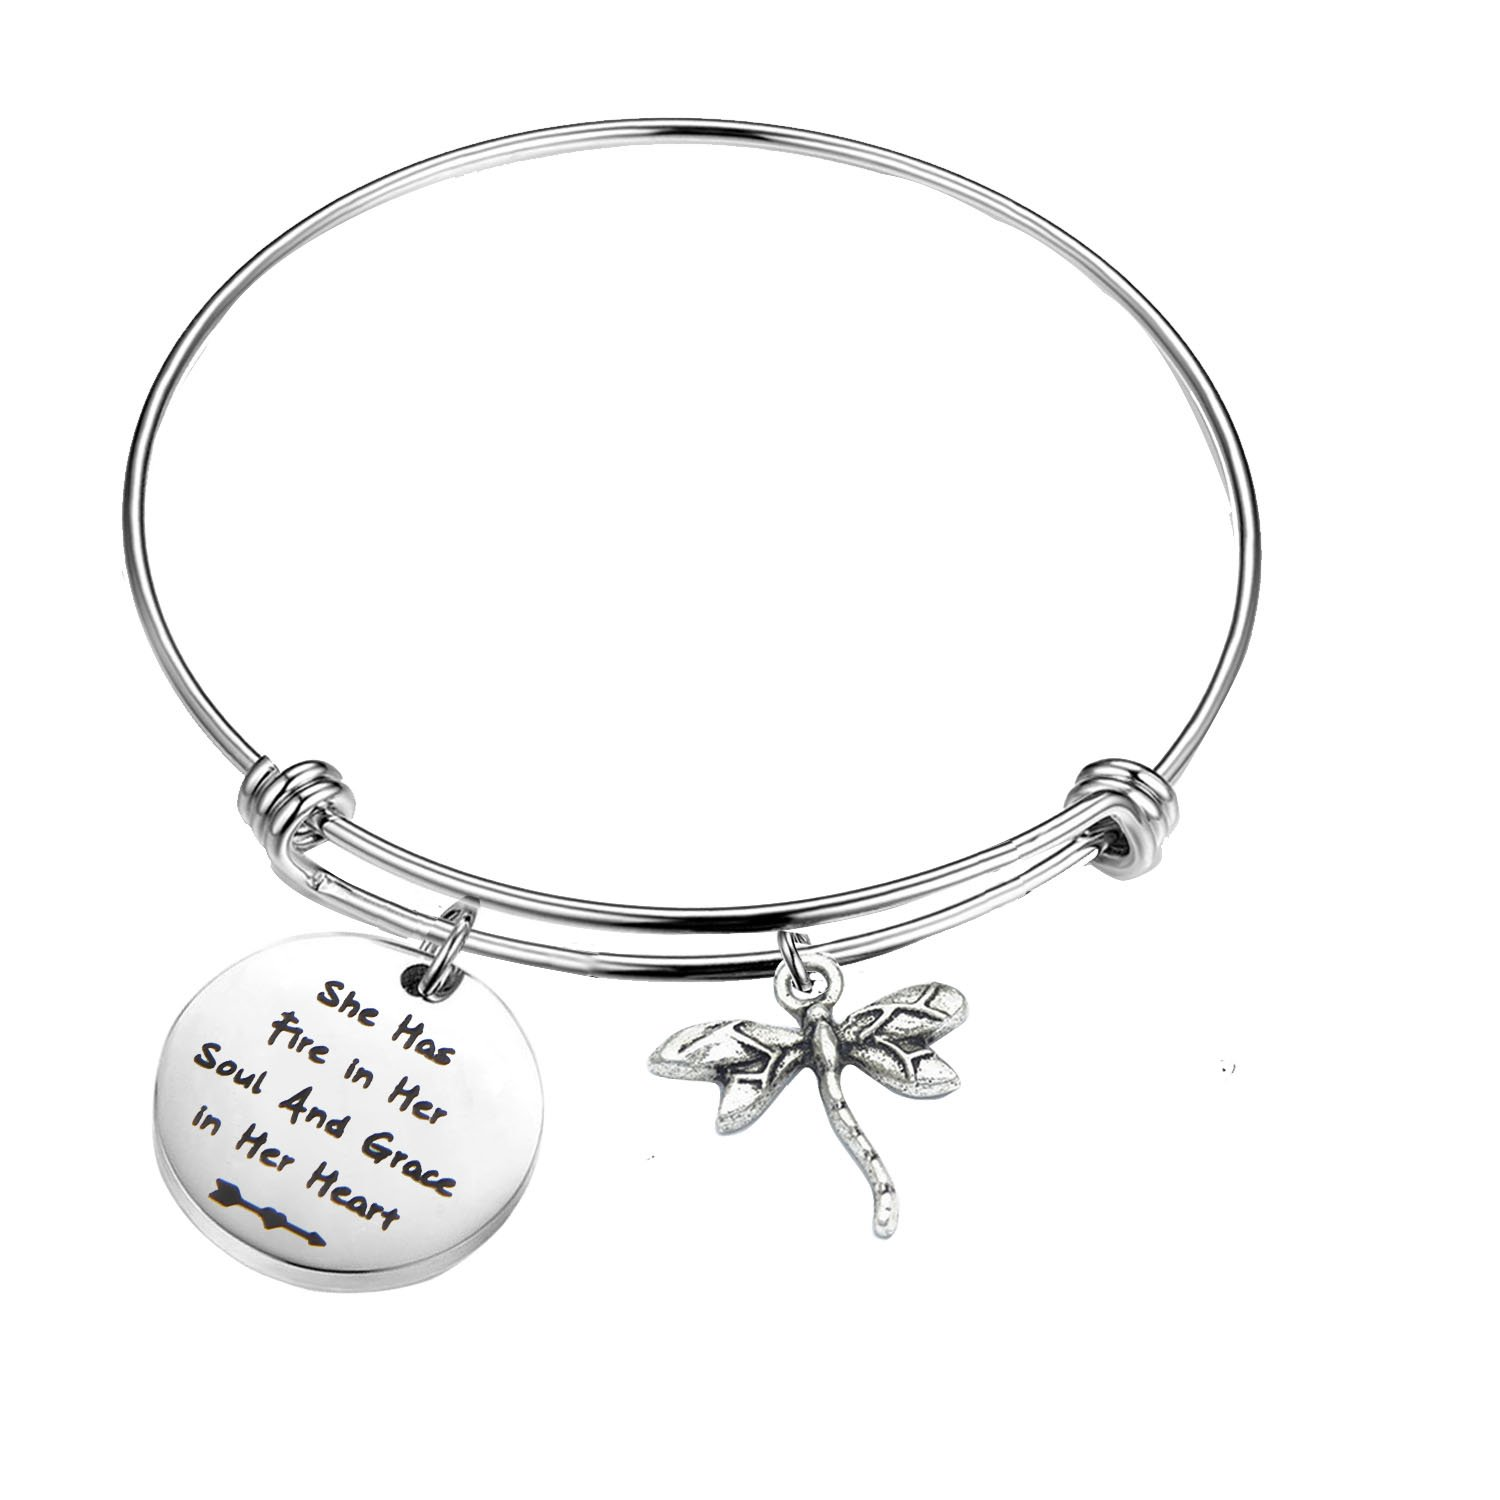 PLITI Inspirational Jewelry Graduation Gift She Has Fire in Her Soul and Grace in Her Heart Bracelet with Dragonfly Charm Motivational Faith Gift for Her (She has fire in Soul)